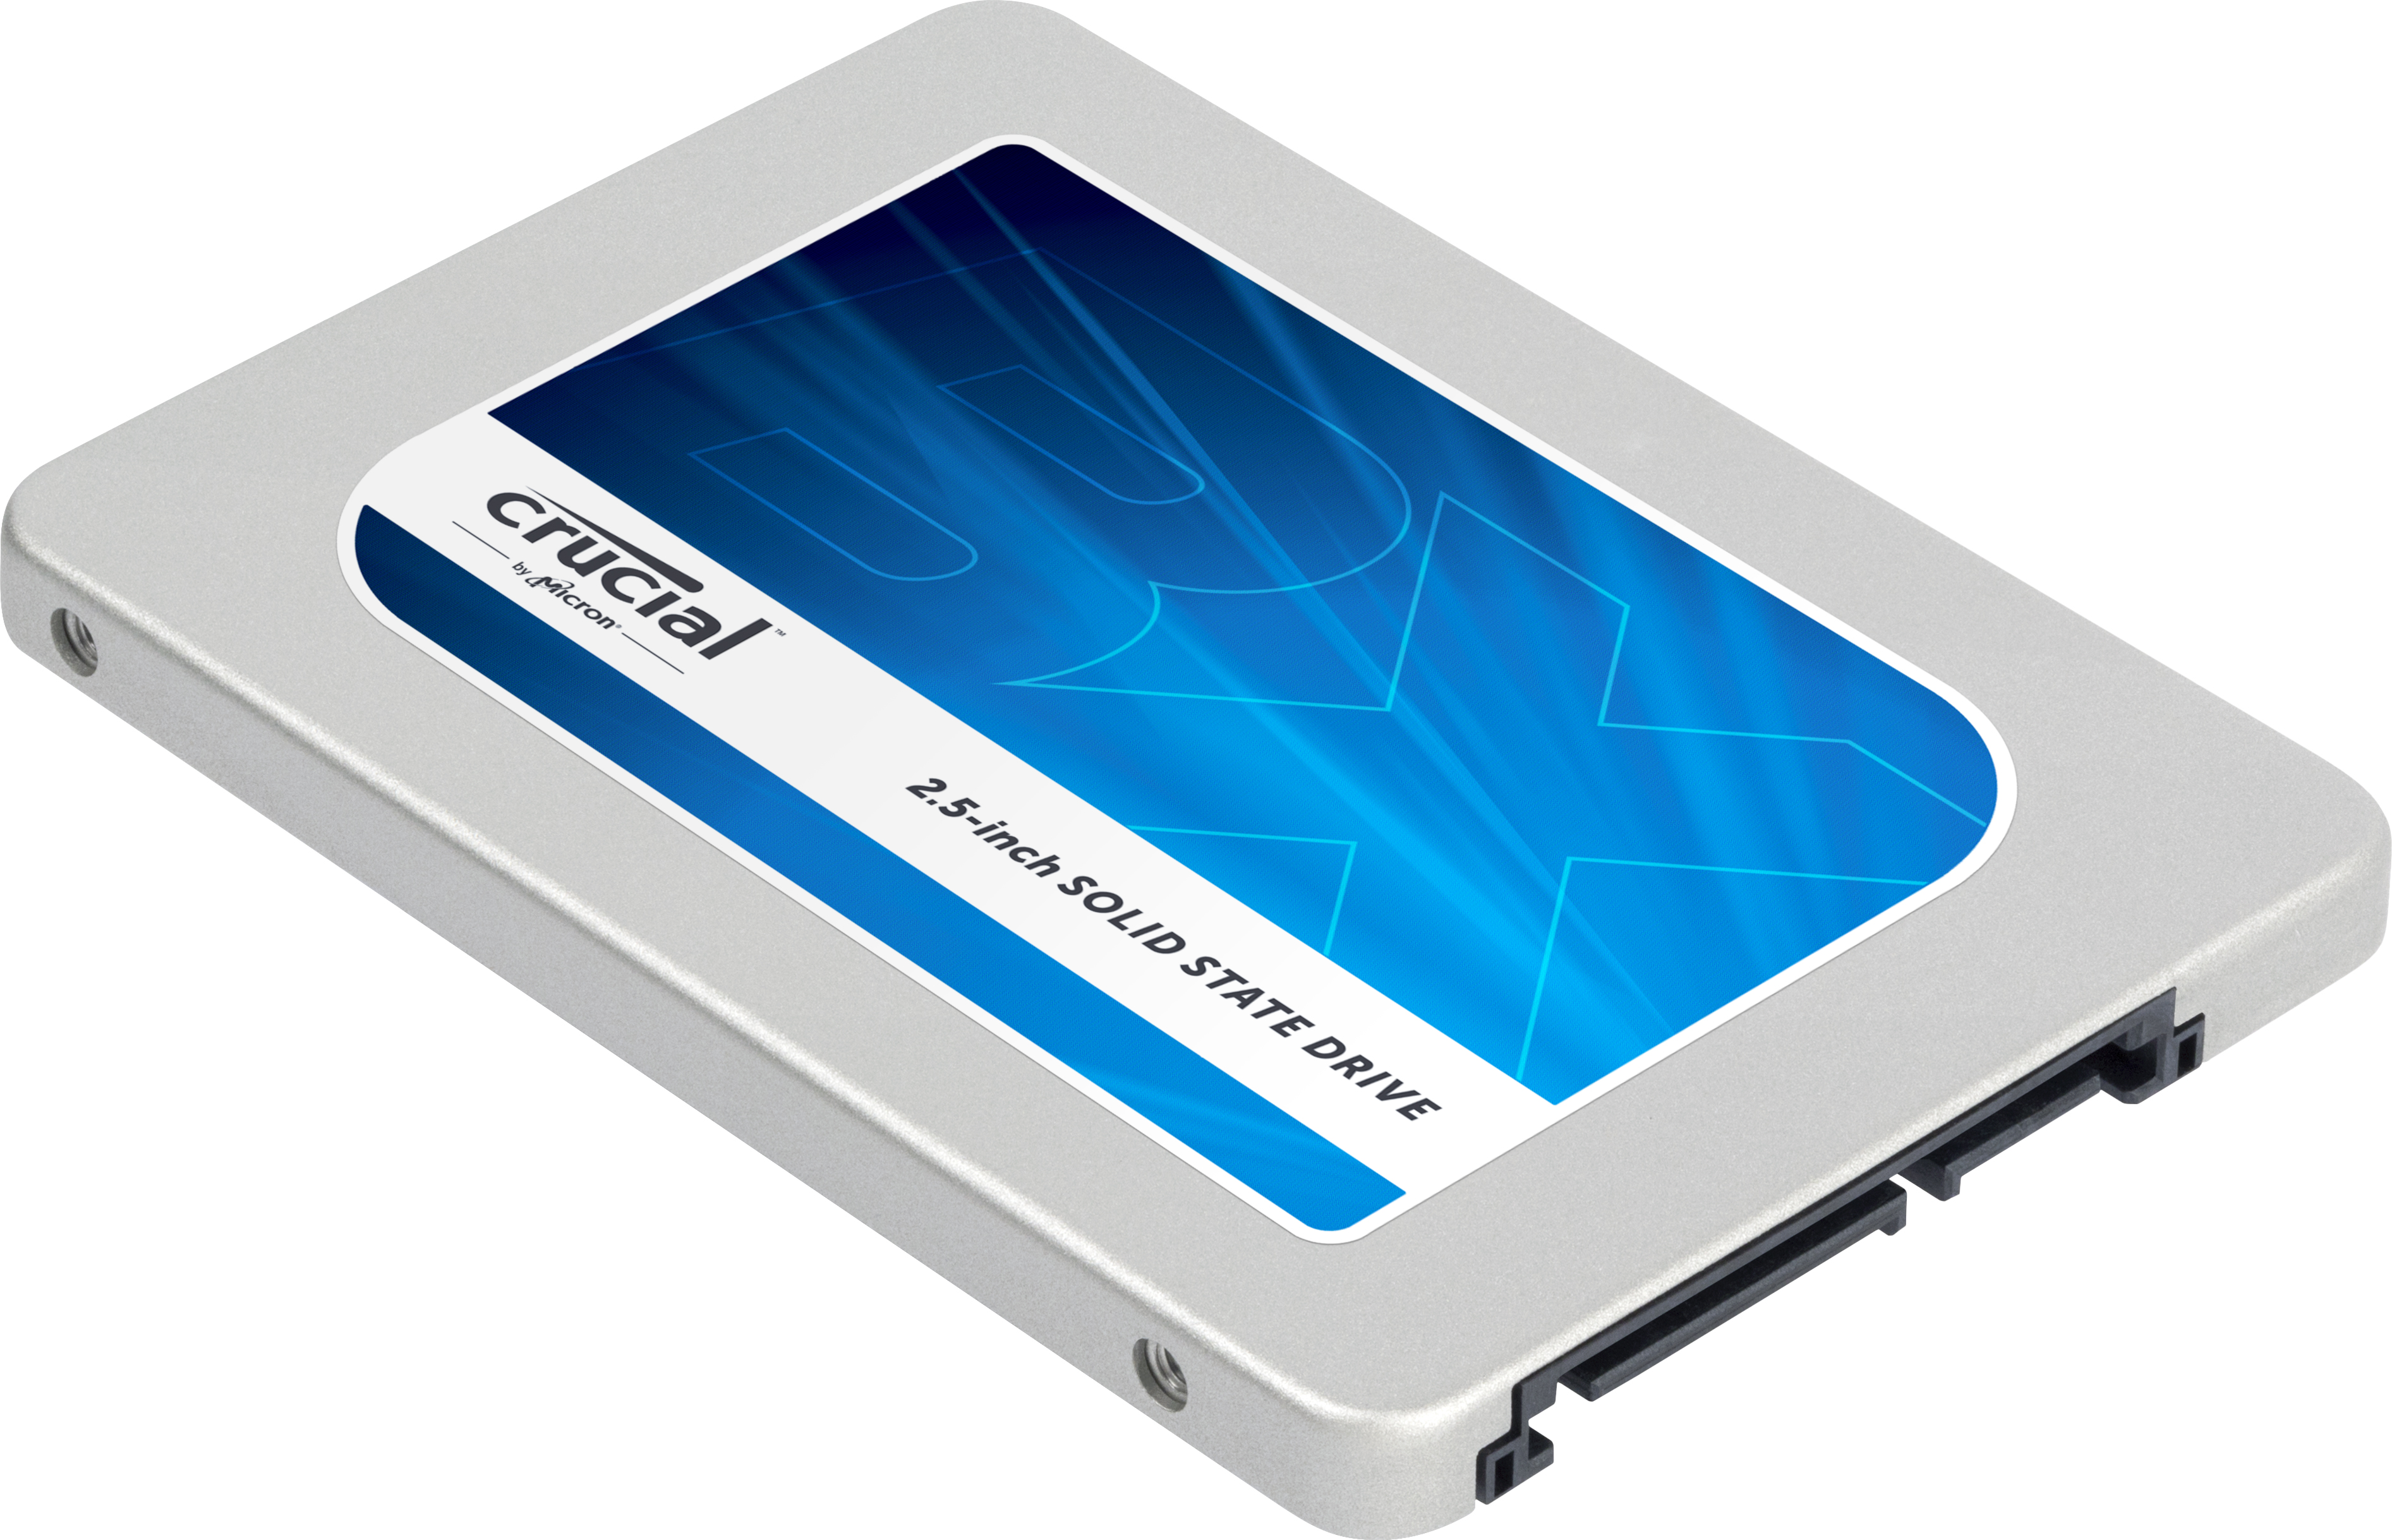 crucial-bx200-2-5inch-product-dynamic-image.jpg